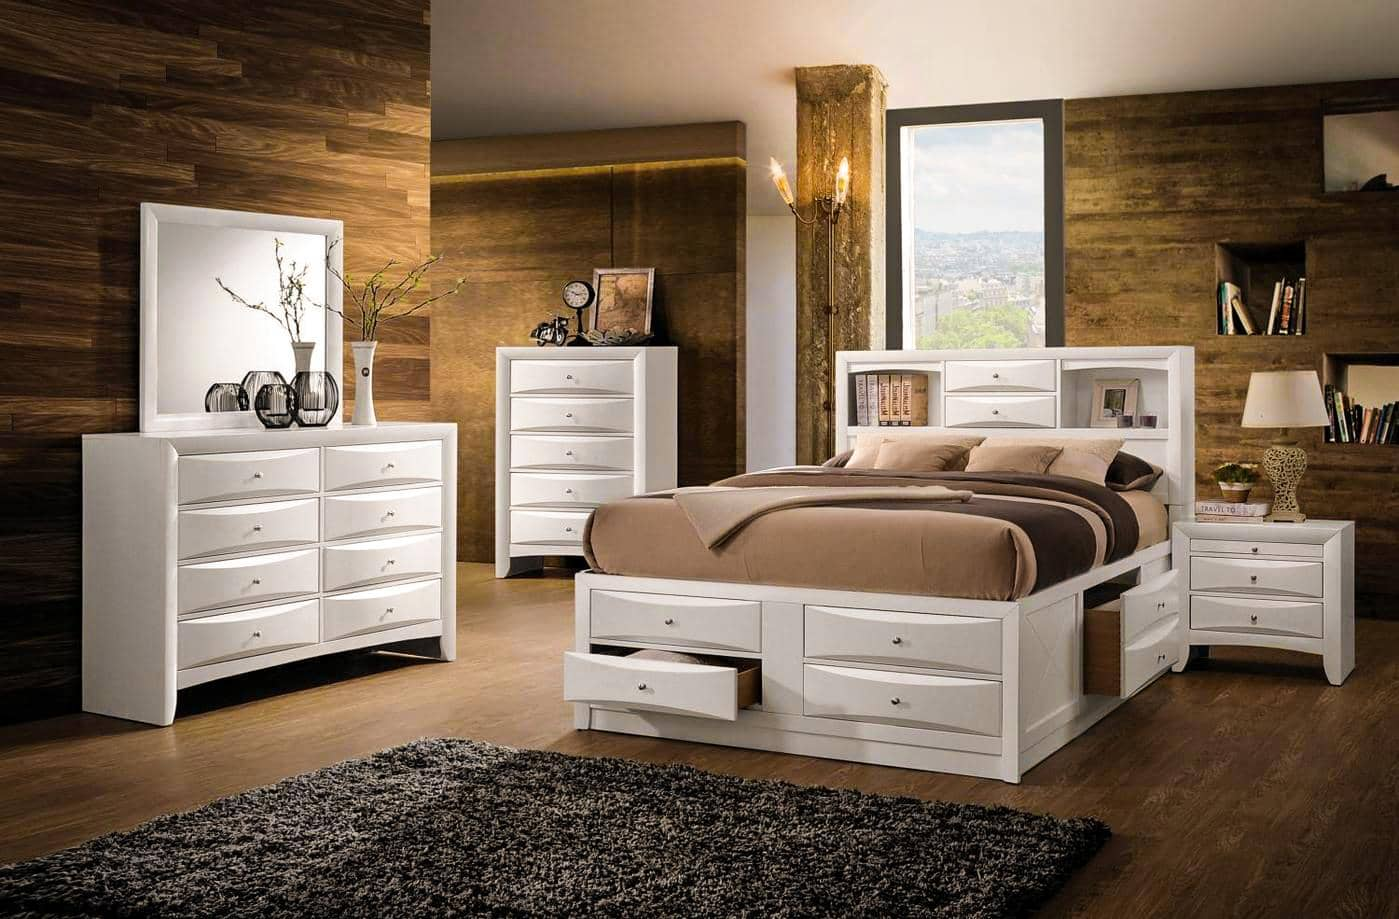 Simple Ways to Make Your Home for Winter. Cozy wooden trimmed bedroom with queen white furniture set